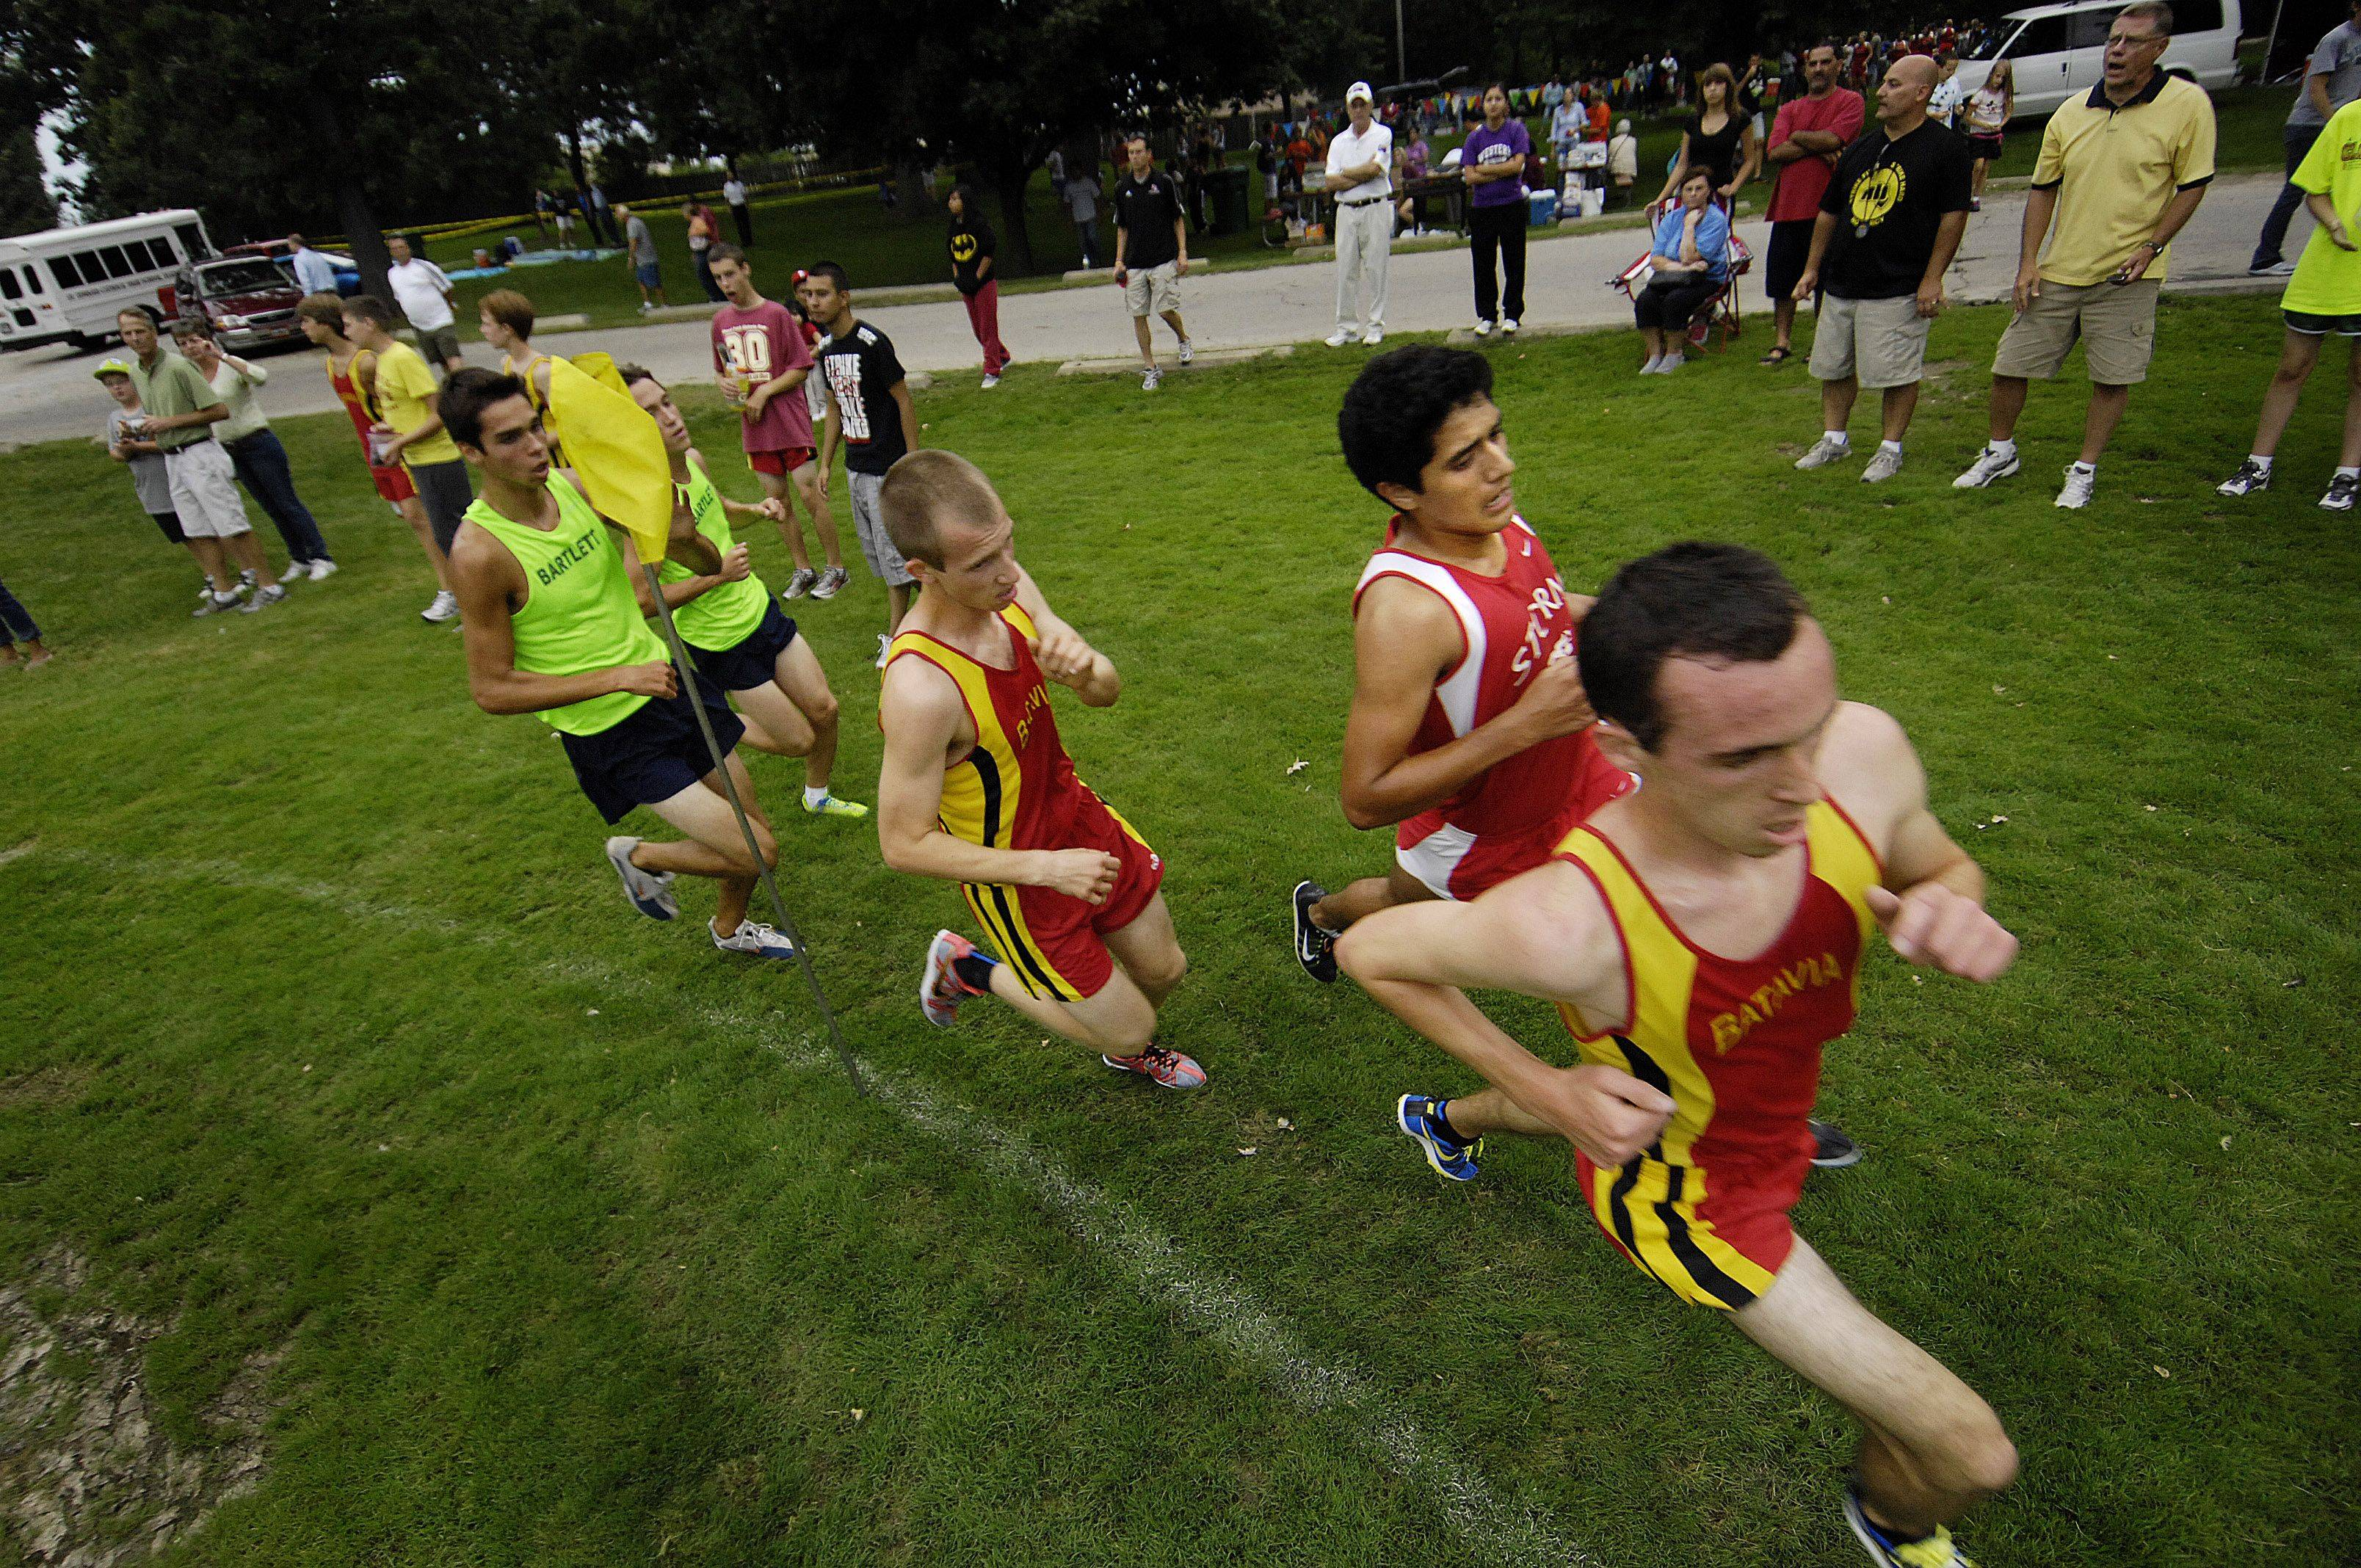 Eventual winner Fernando Garcia of South Elgin rounds a late corner in second place during the Elgin cross country invitational Tuesday at Lords Park. He is surrounded by Batavia teammates Mike Redmond in front, who eventually finished third, and Chris Spadafora who finished fourth. Behind them are Bartlett teammates Joey Salatino, who finished second and Connor Rachford who finished fifth.